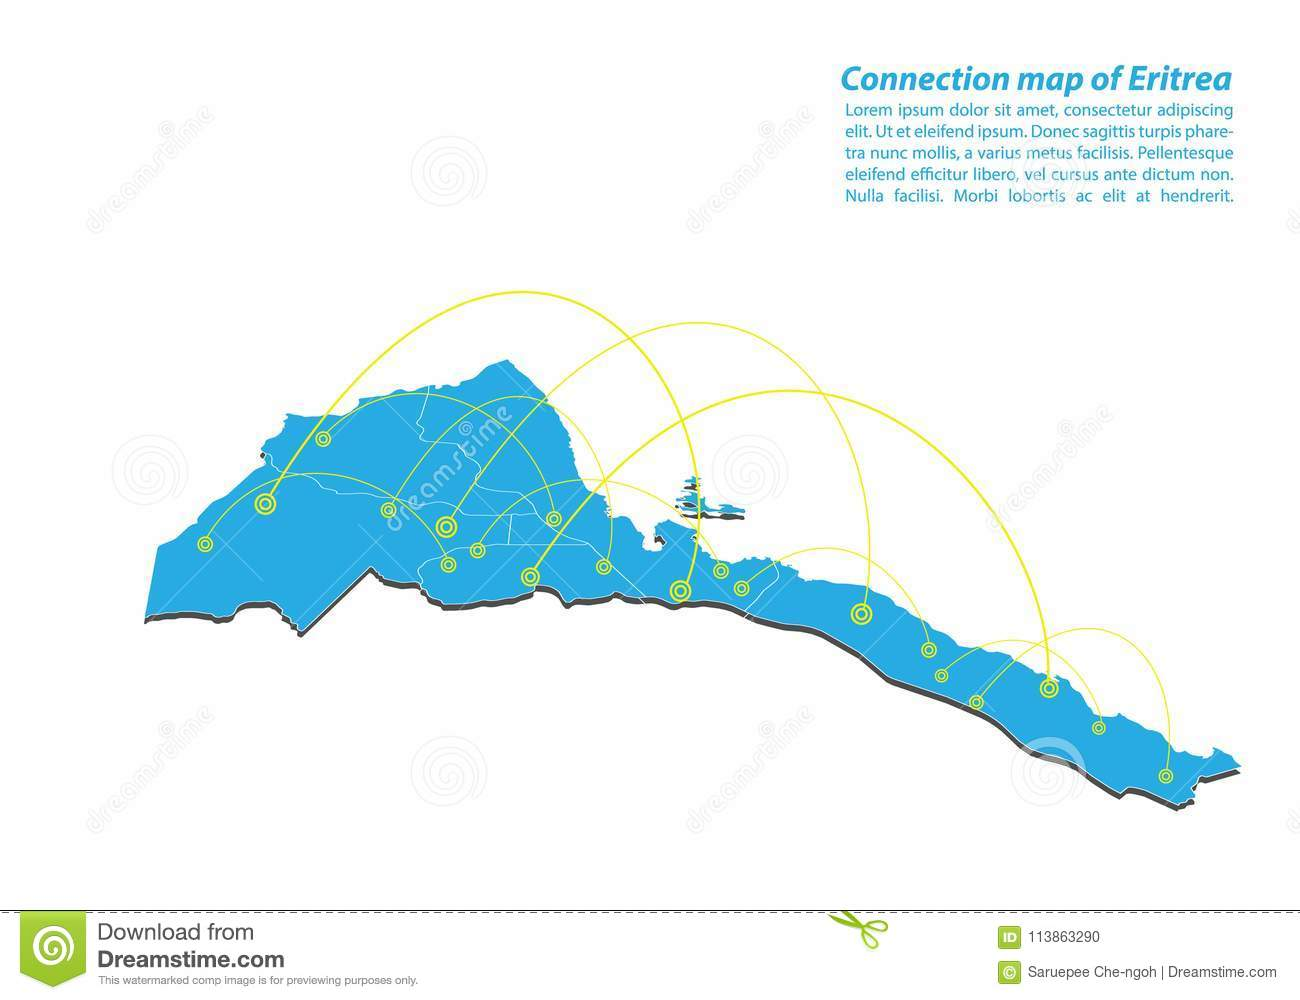 Modern Of Eritrea Map Connections Network Design, Best ... on